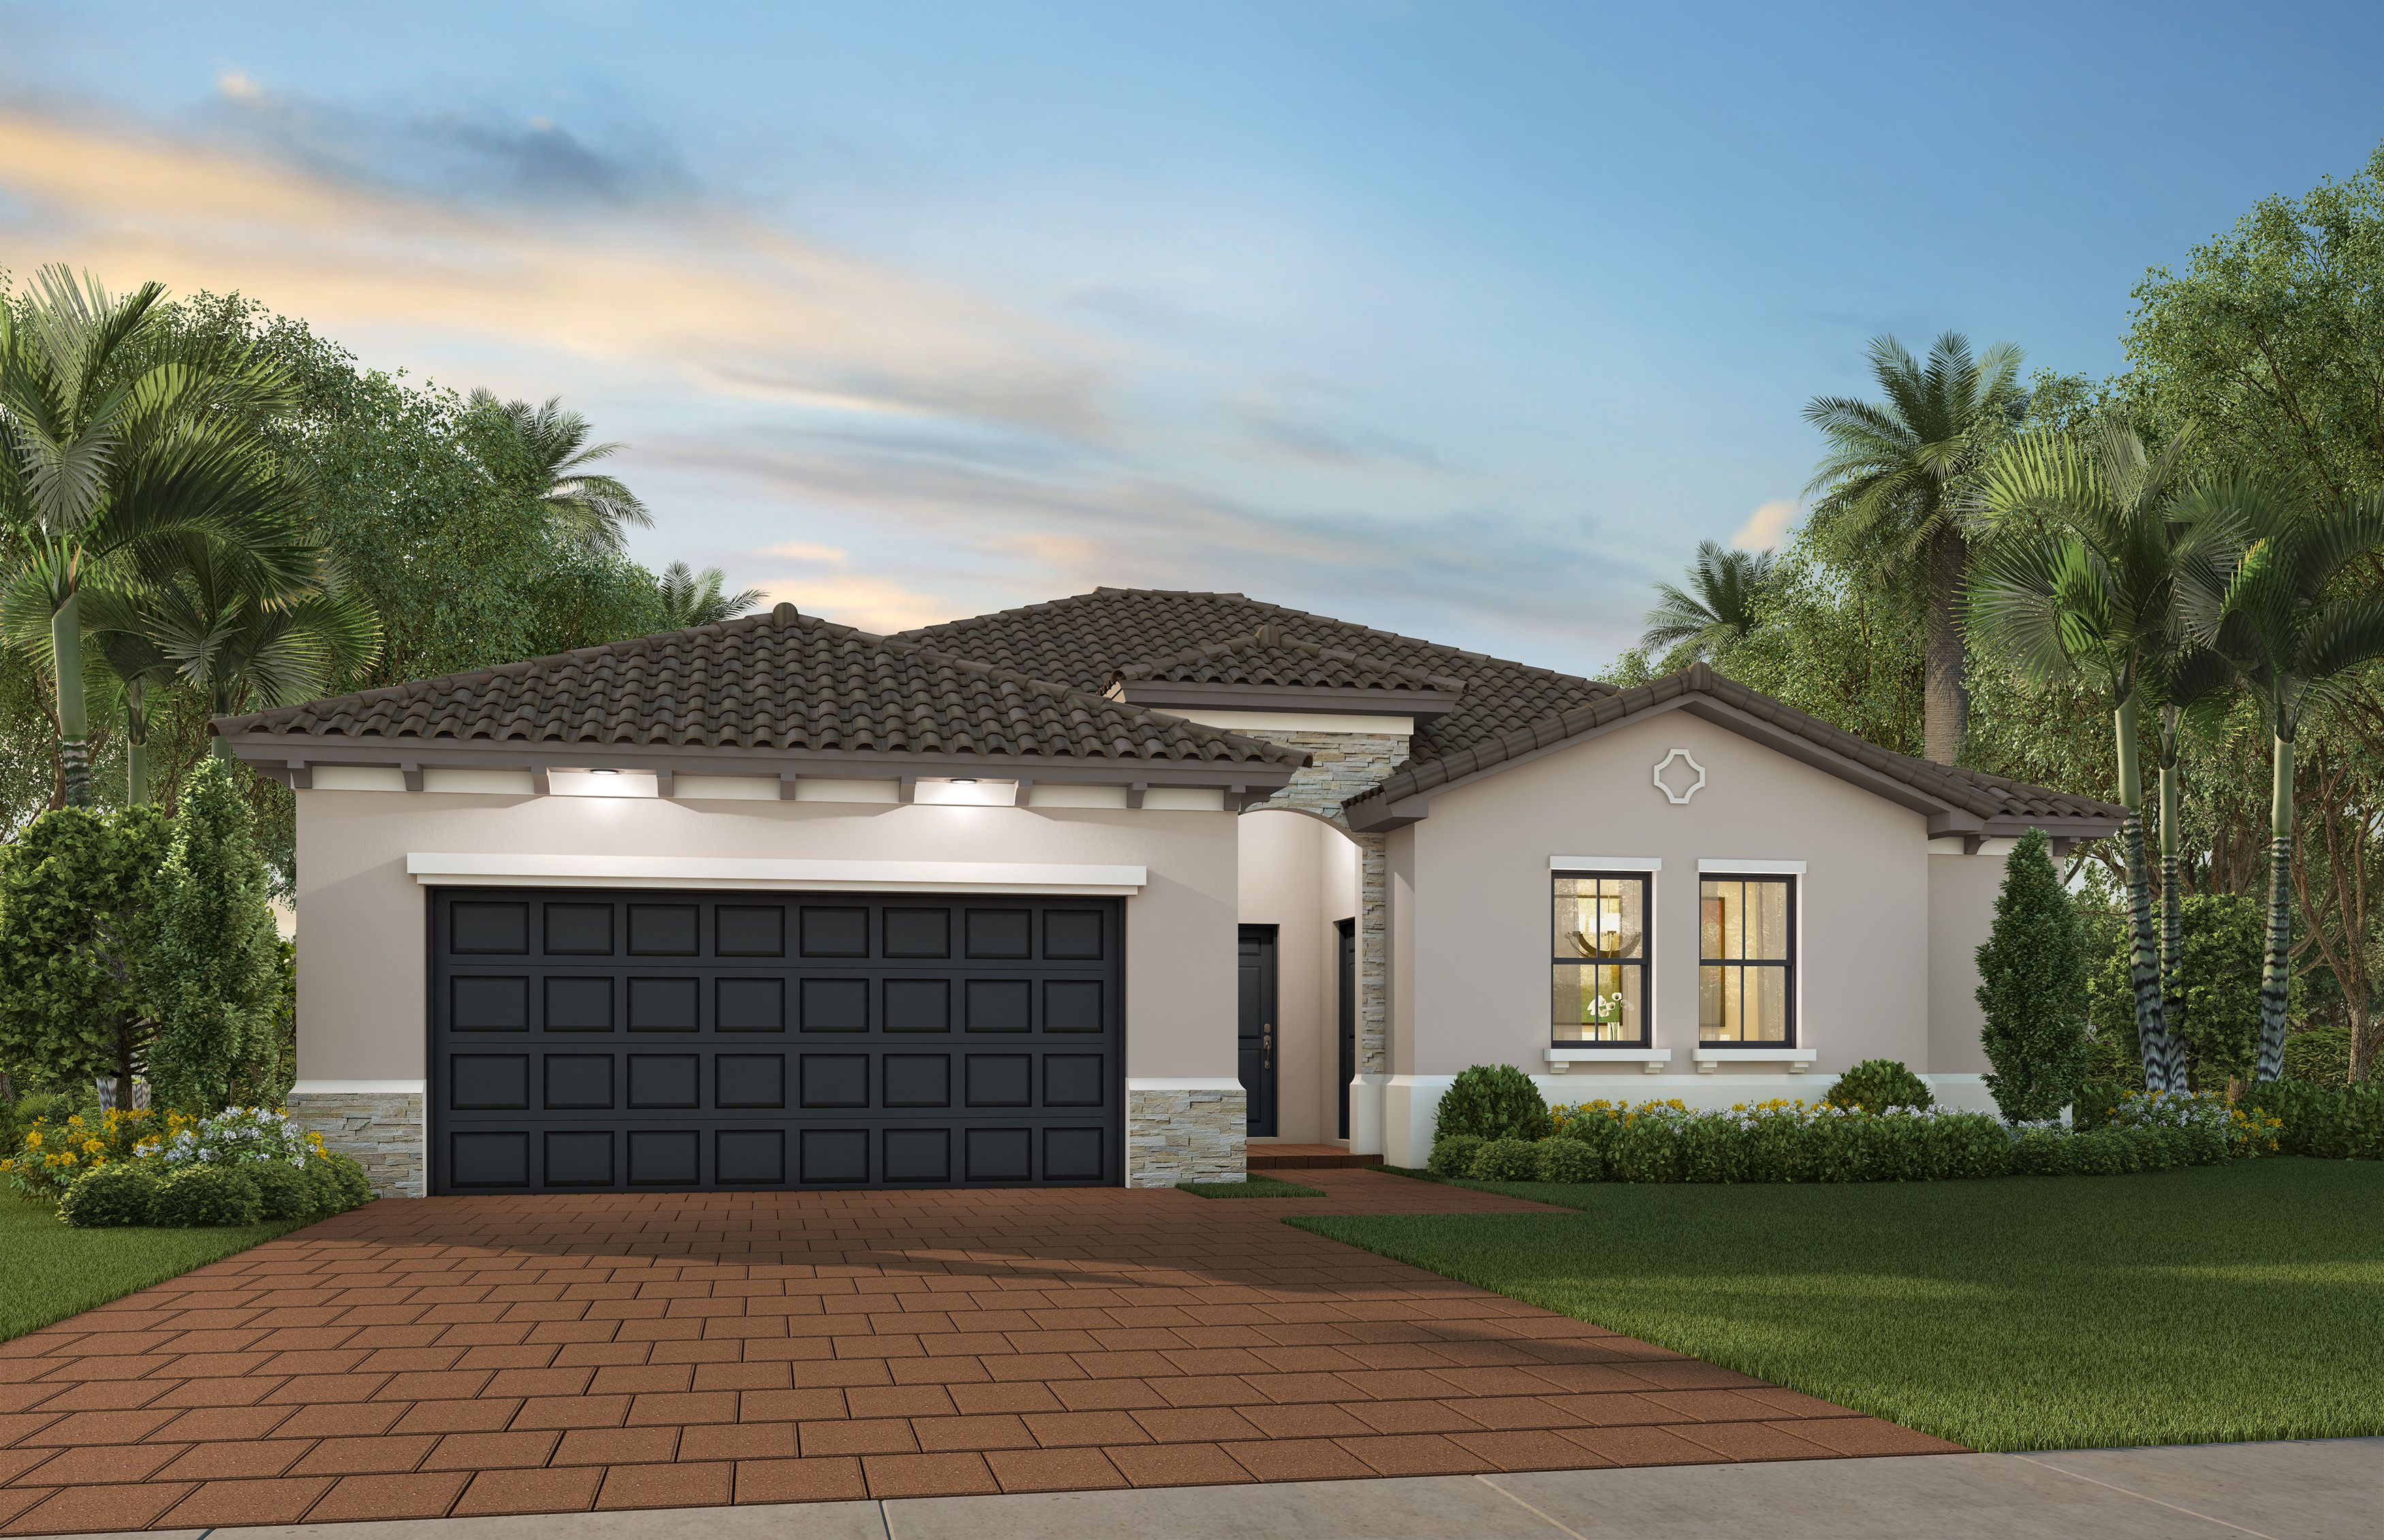 Cool Opening Soon New Single Family Homes In South Miami Dade Home Interior And Landscaping Elinuenasavecom